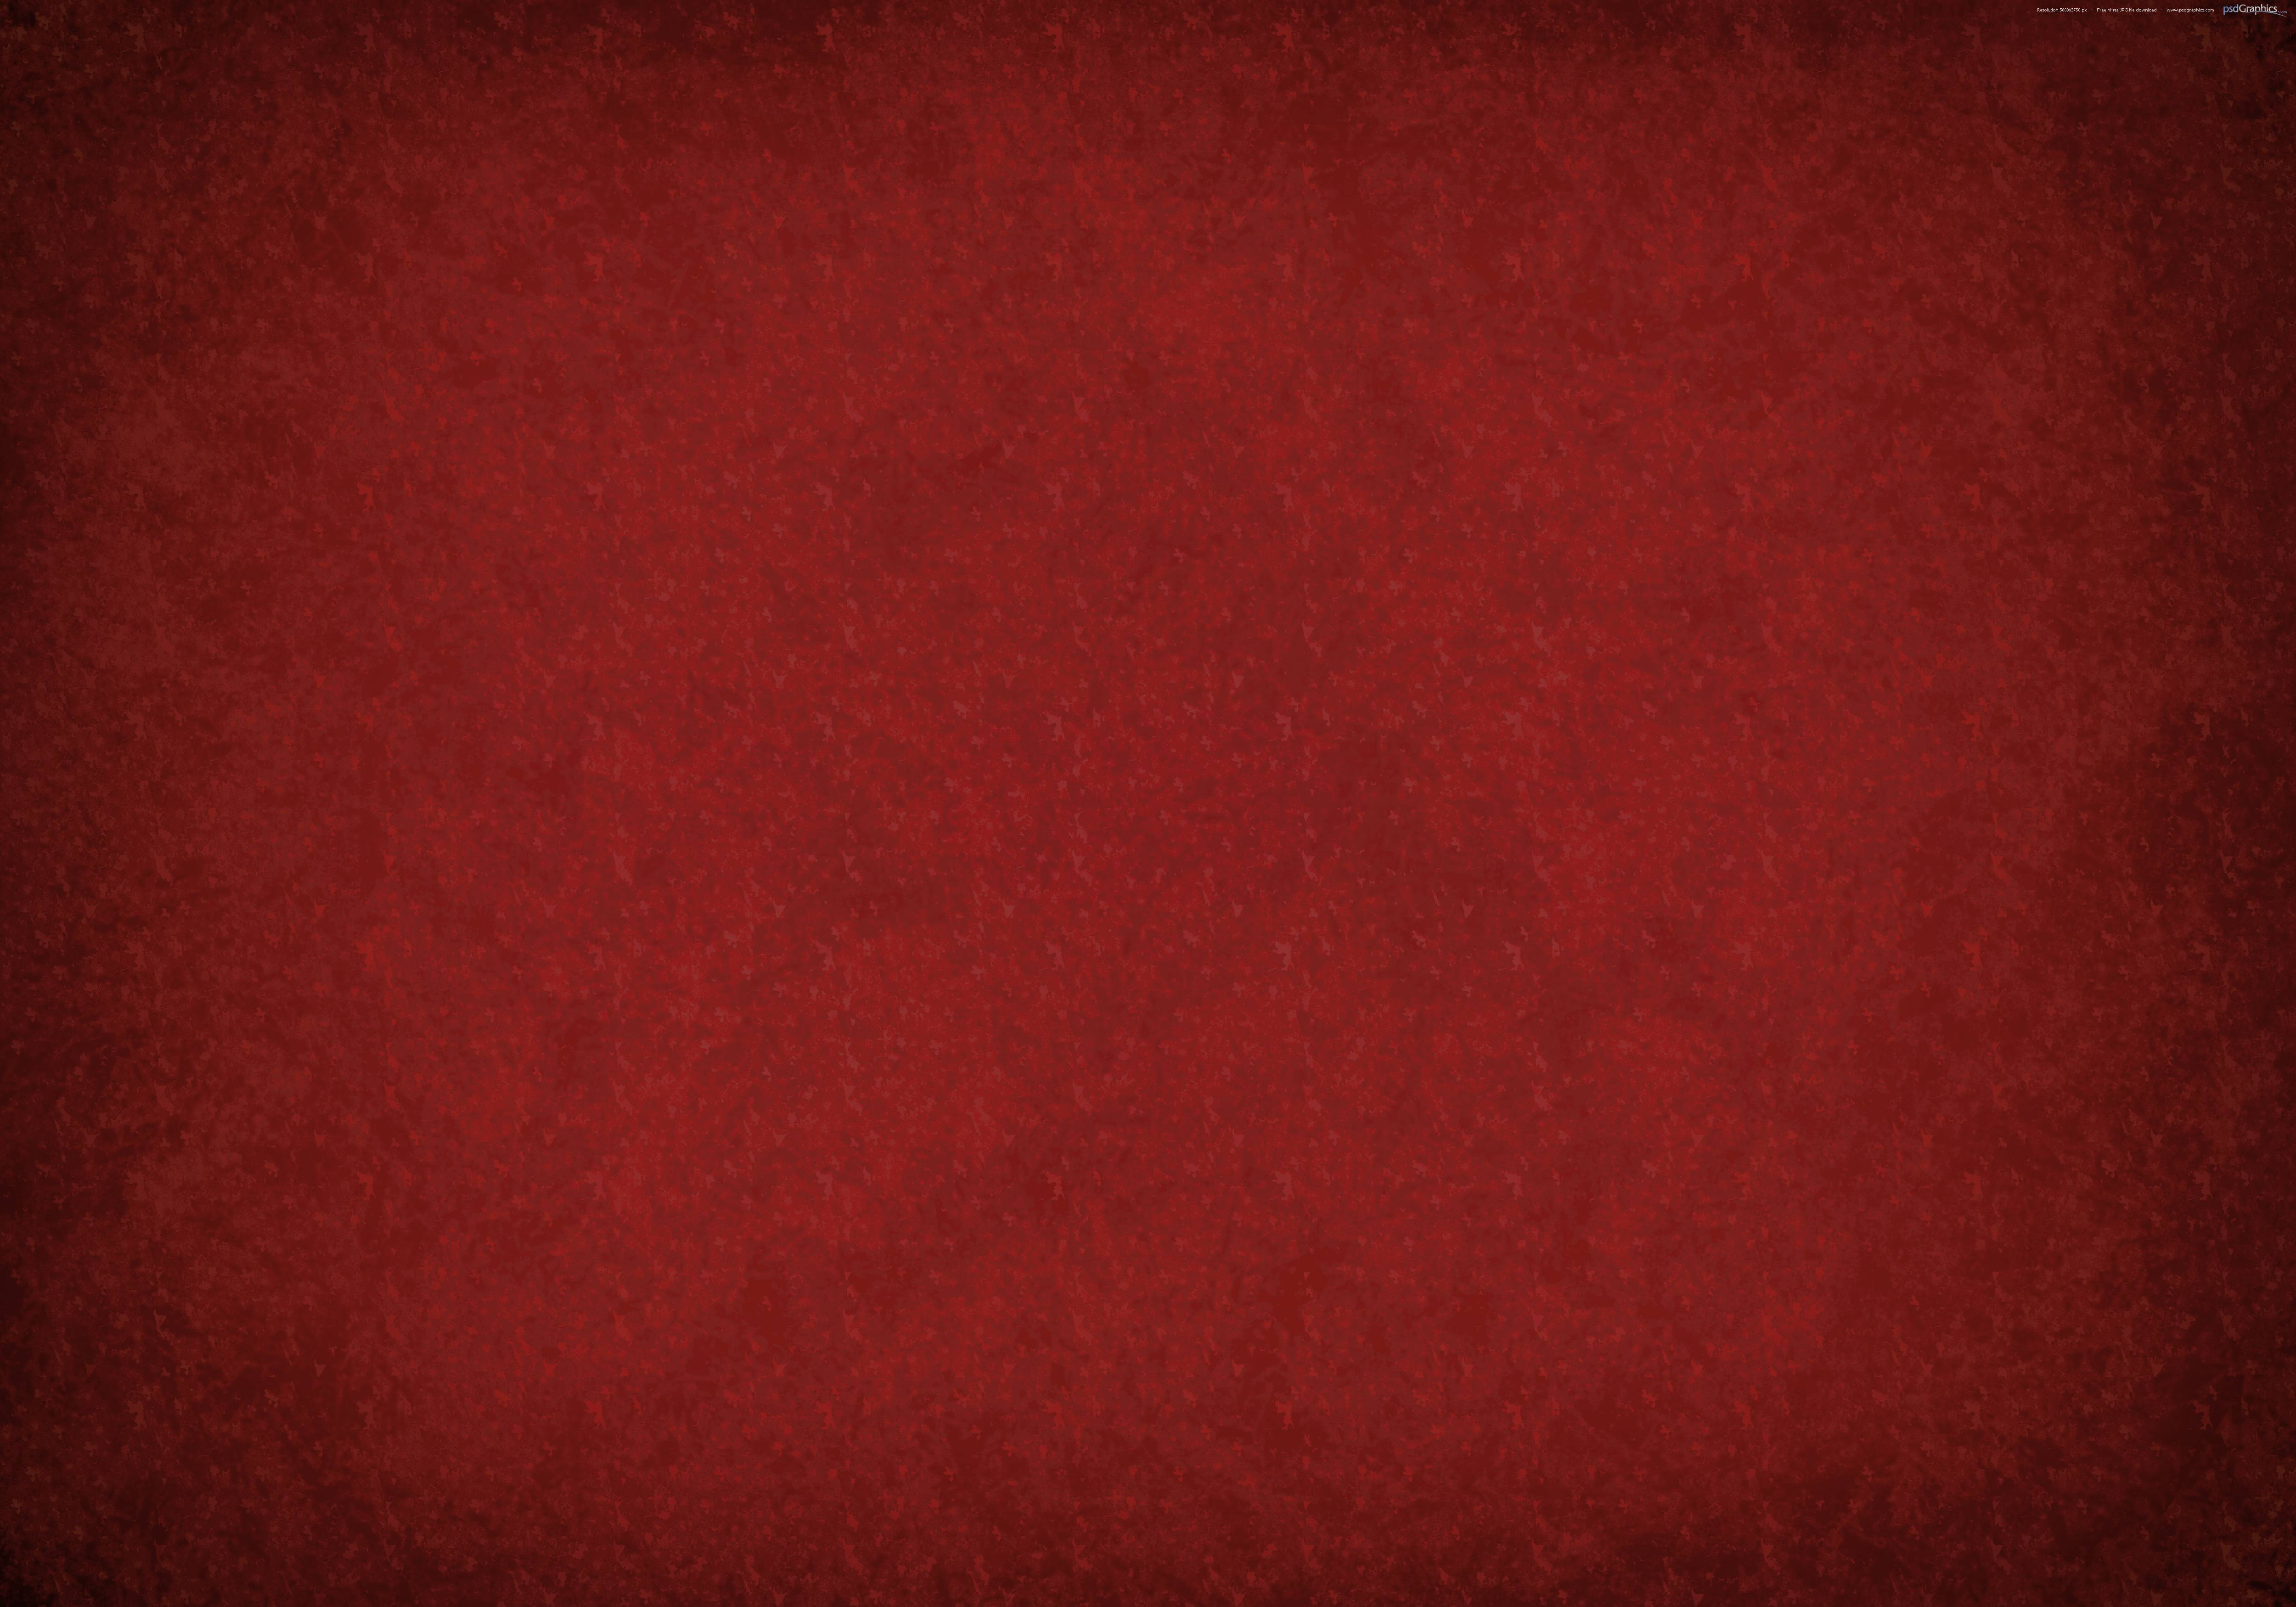 red background images wallpaper cave wallpaper cave